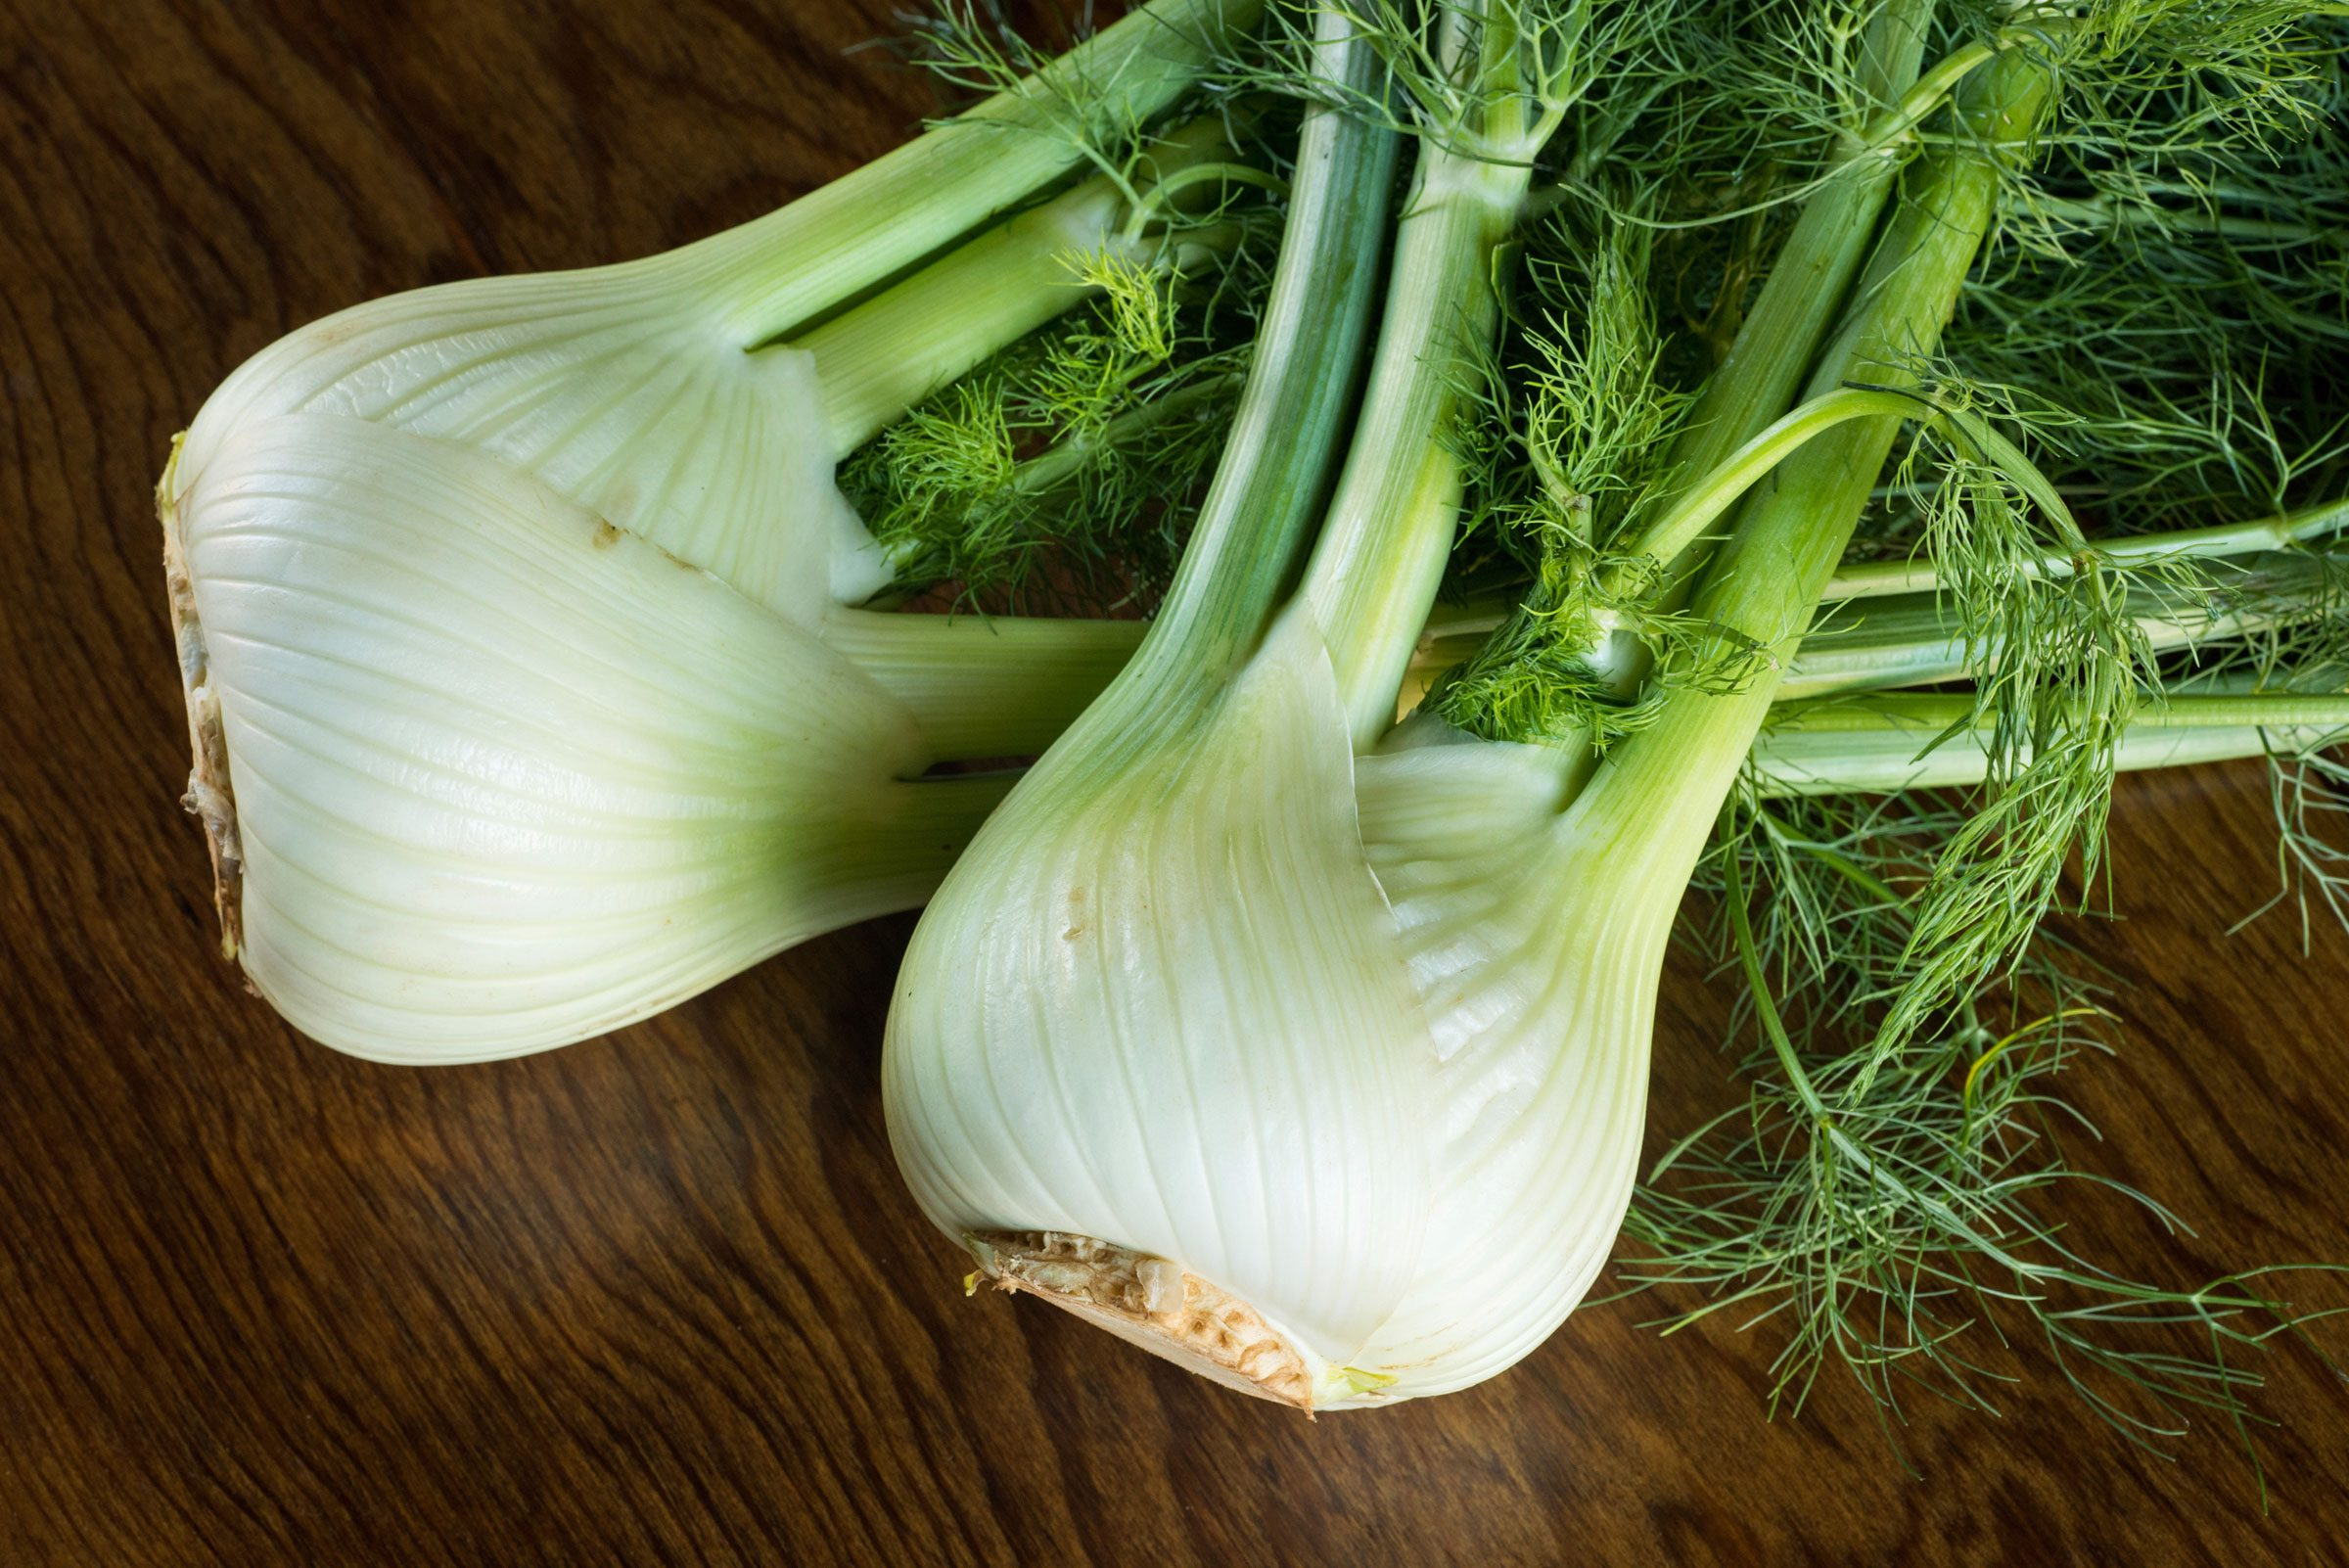 Fennel Makes an Upset Stomach Feel Better